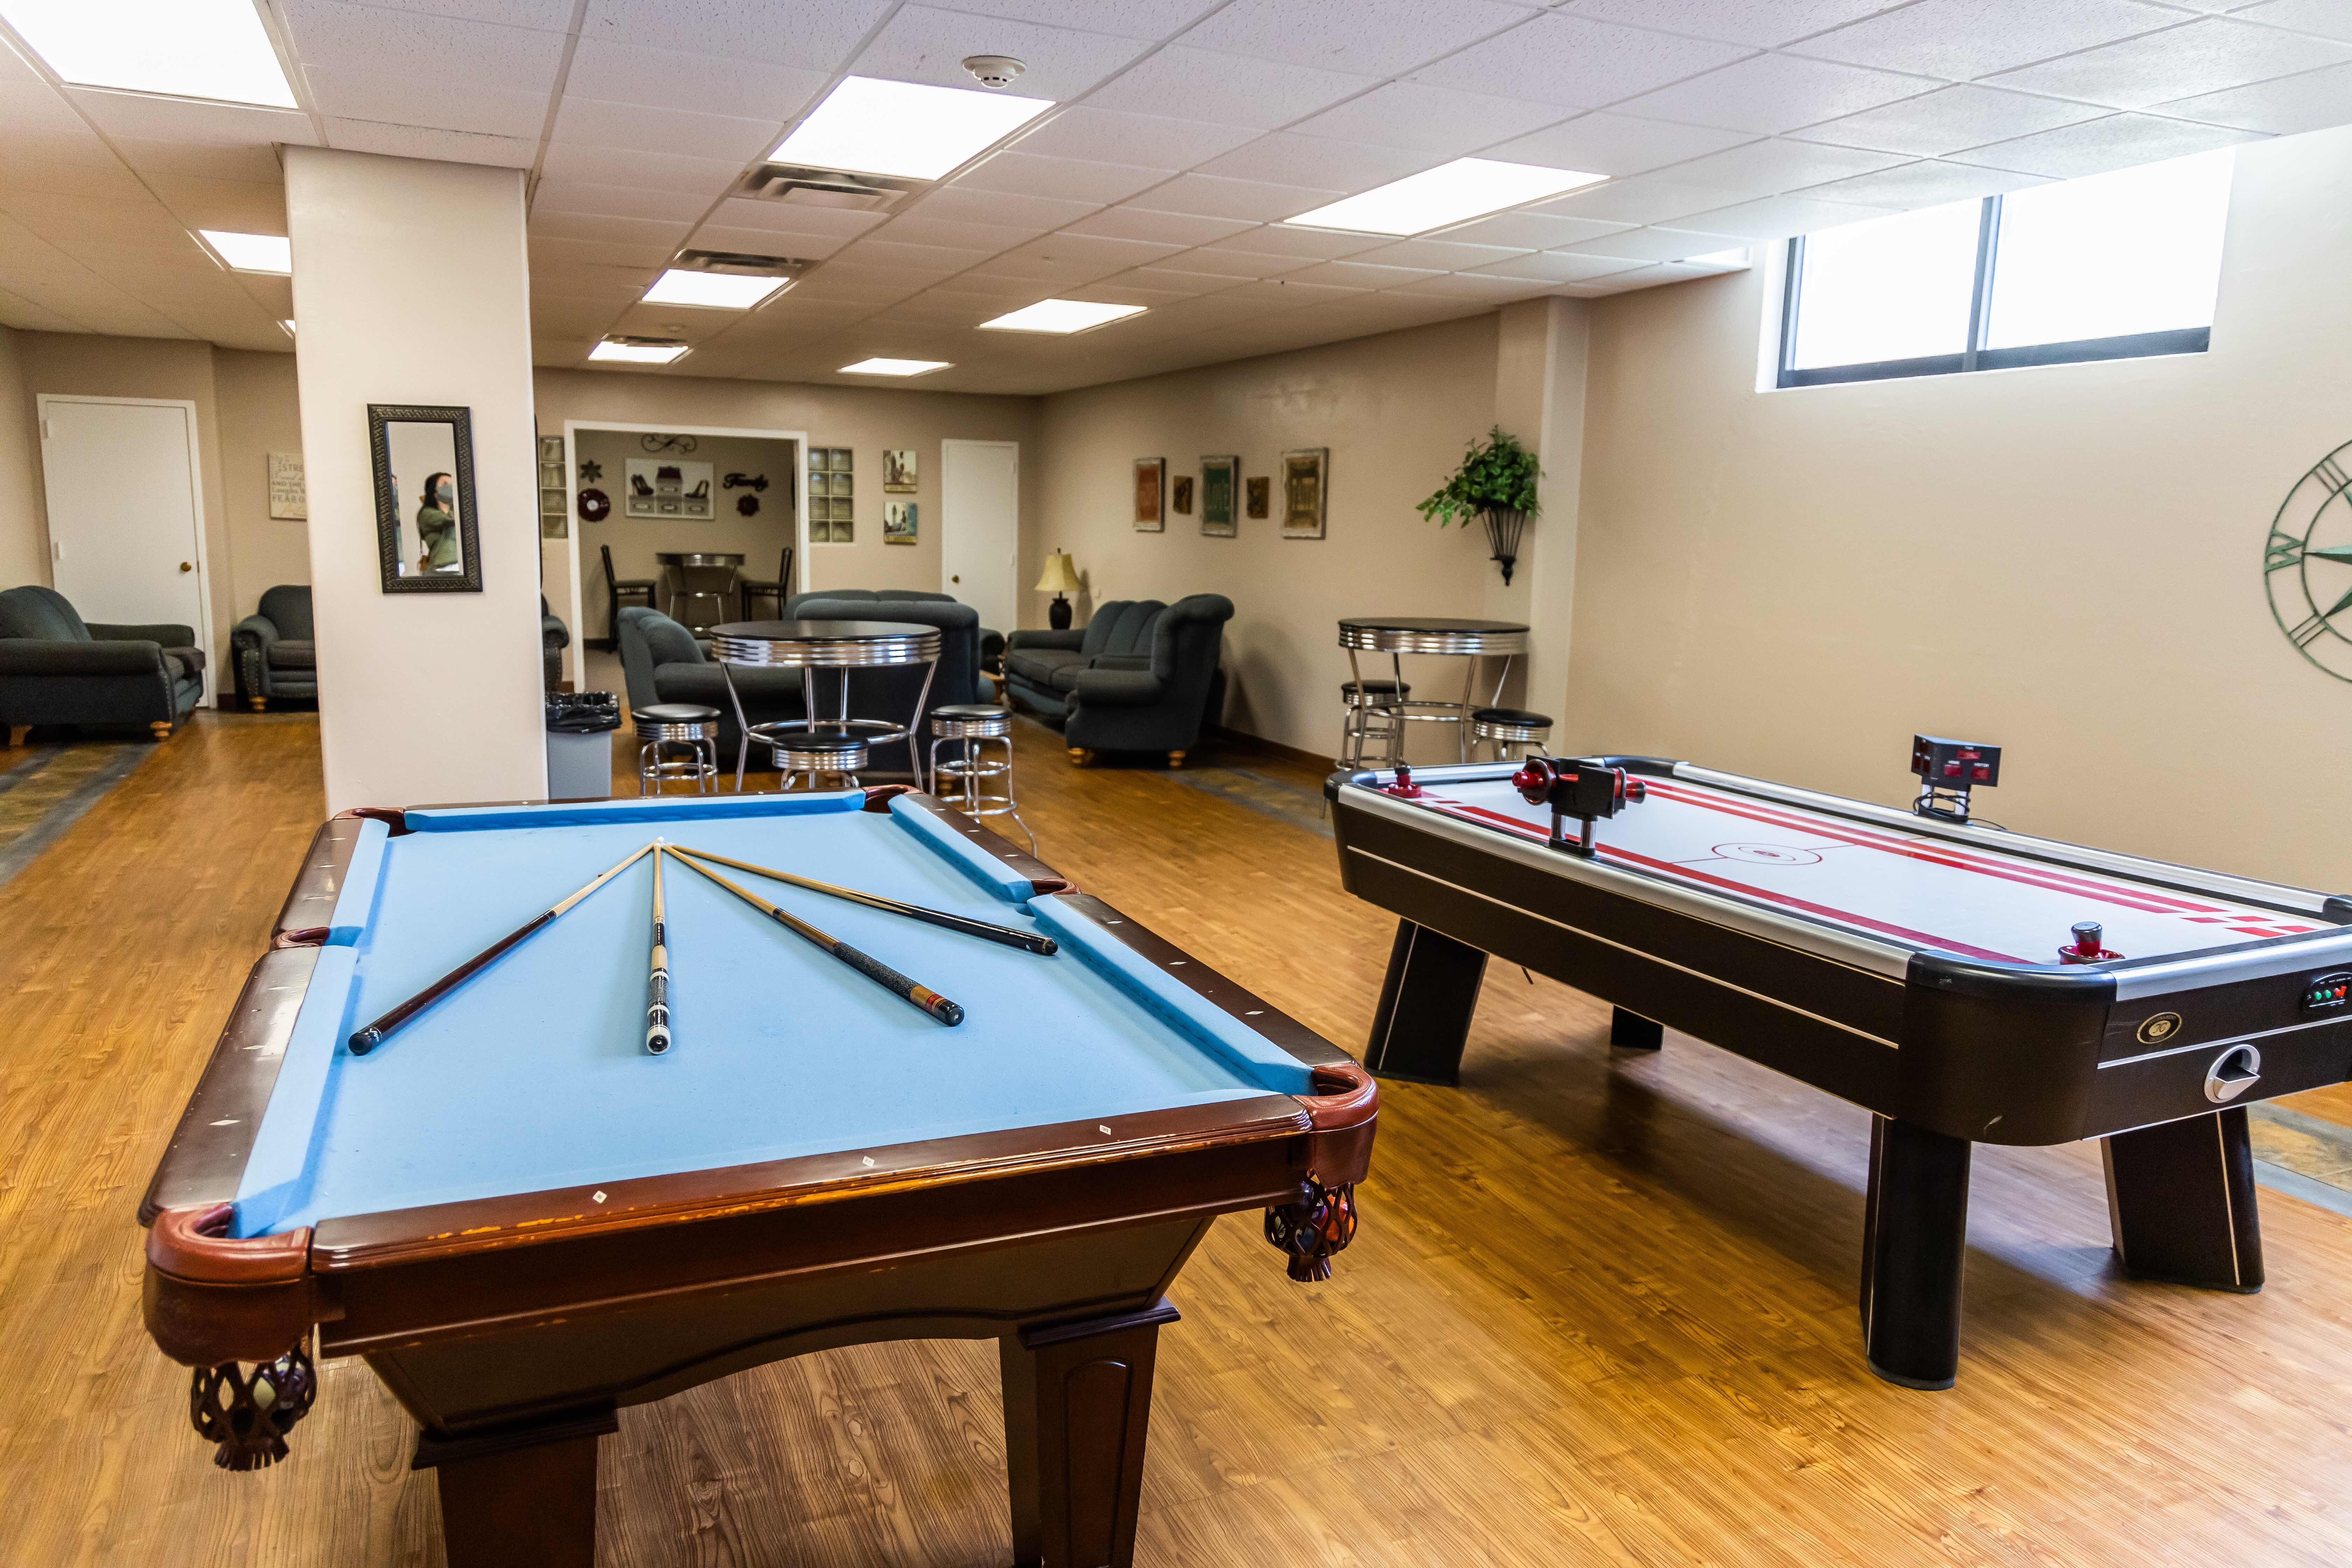 A game room with a pool table, air hockey table and various couches for seating